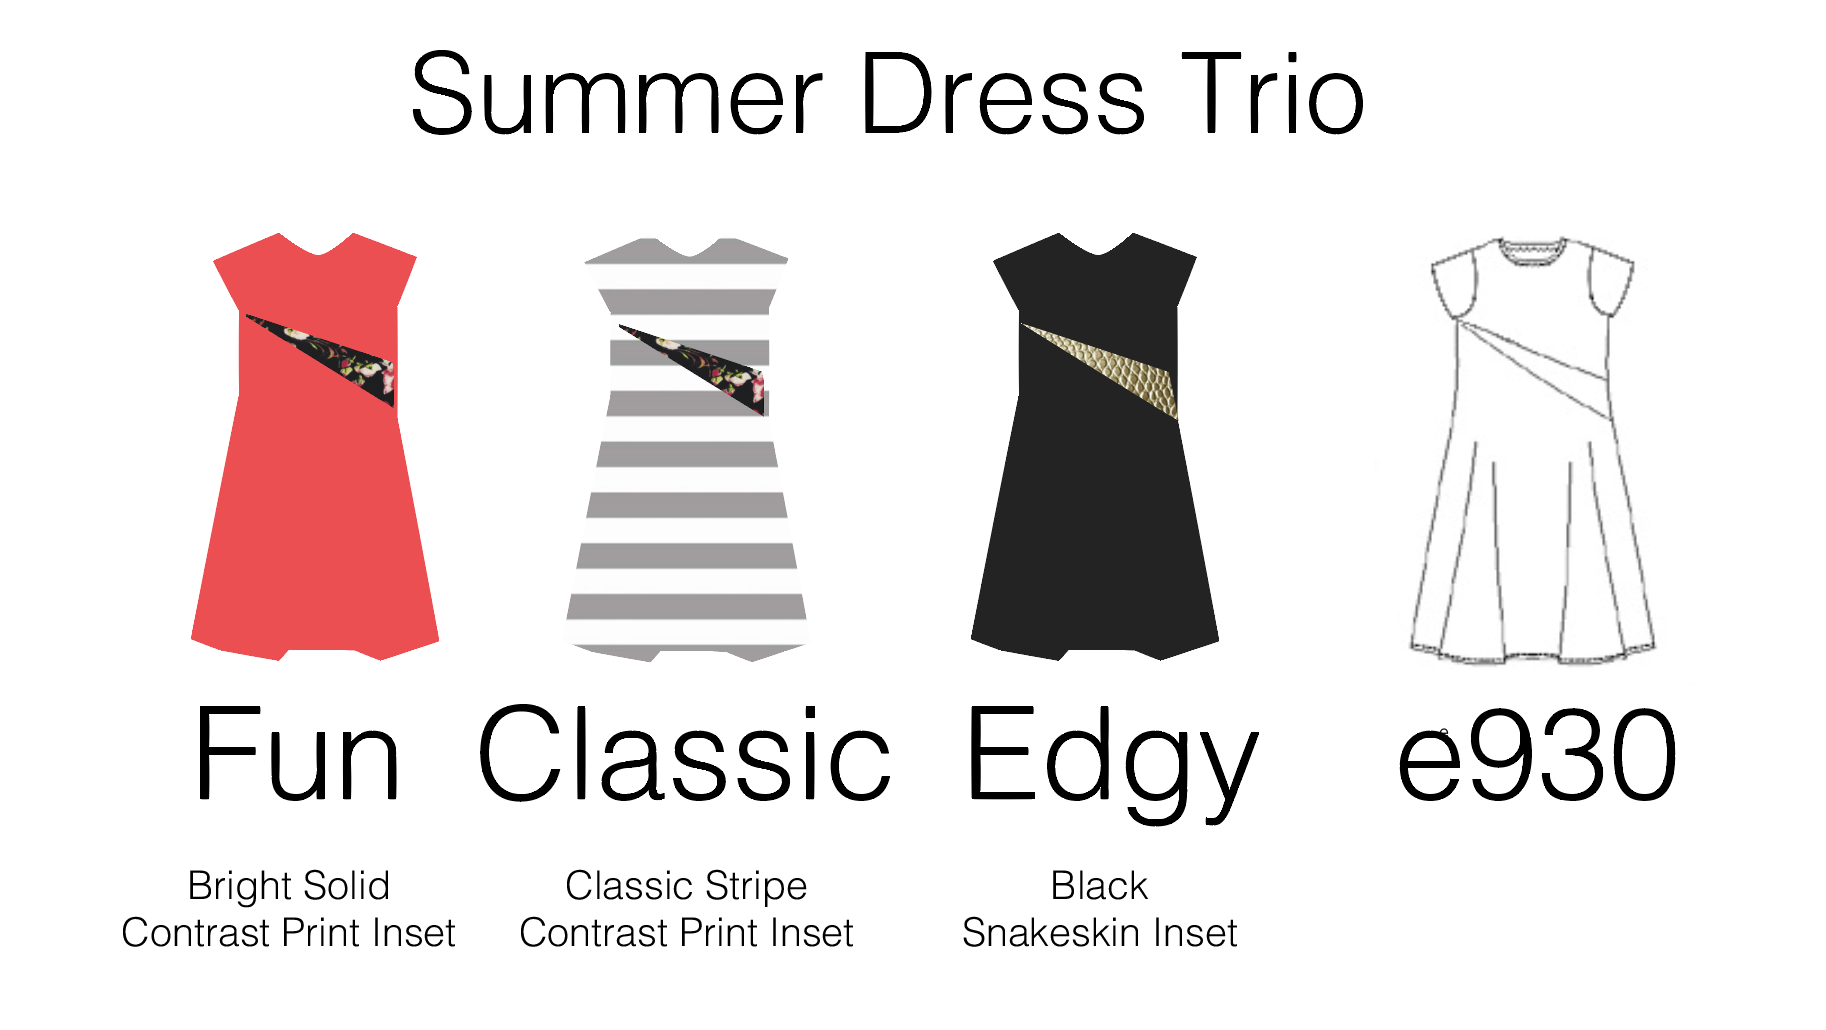 Make the A-line dress fit your style! Here are three fun sewing design options for the Downloadable A-Line Dress pattern.